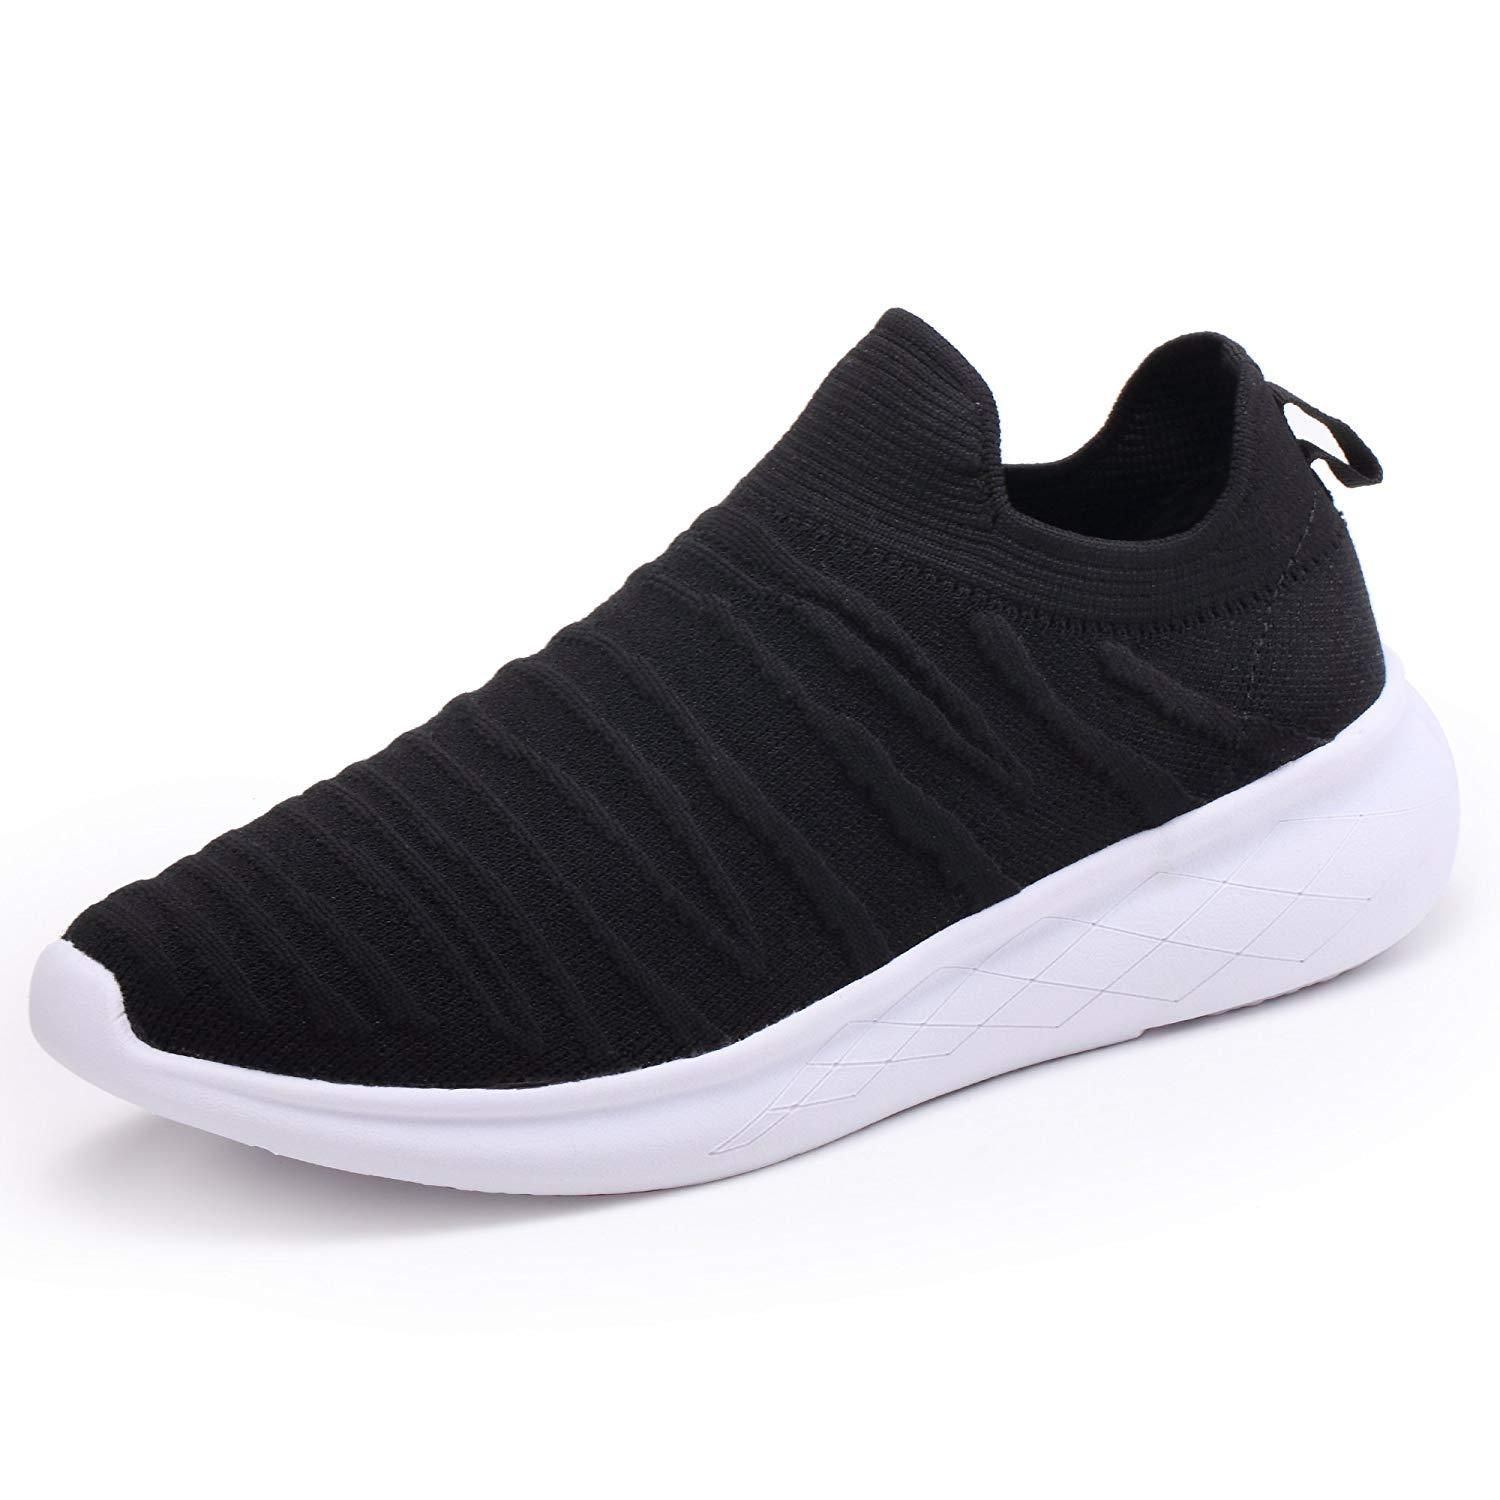 Womens Athletic Sneakers Walking Tennis Sports Shoes Source by tennisshoeoutfitwinter0694 shoes outfit